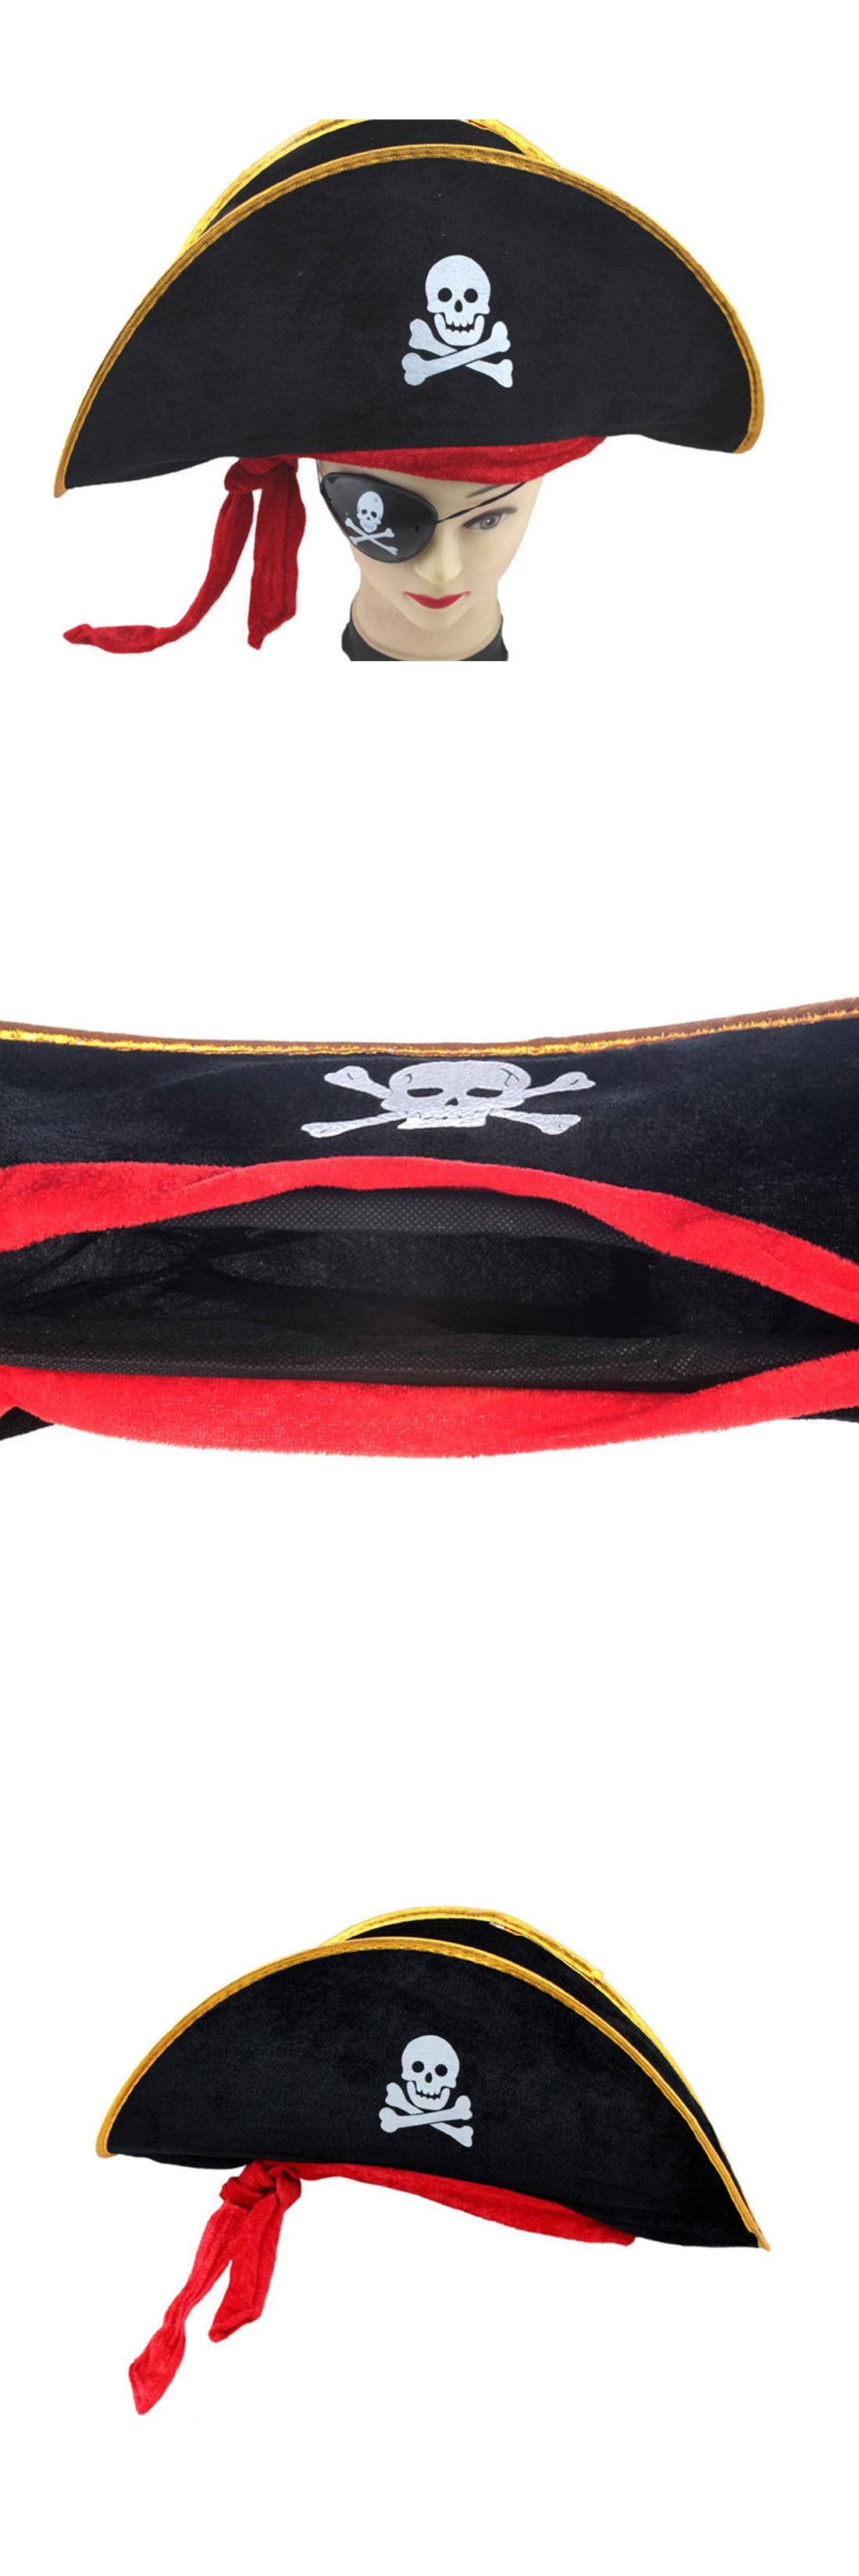 1b87deecb4a  Visit to Buy  Hot sale Halloween Accessories Skull Hat Caribbean Pirate  Hat Skull Pirate Hat Piracy Hat Corsair Cap Party Supplies  Advertisement